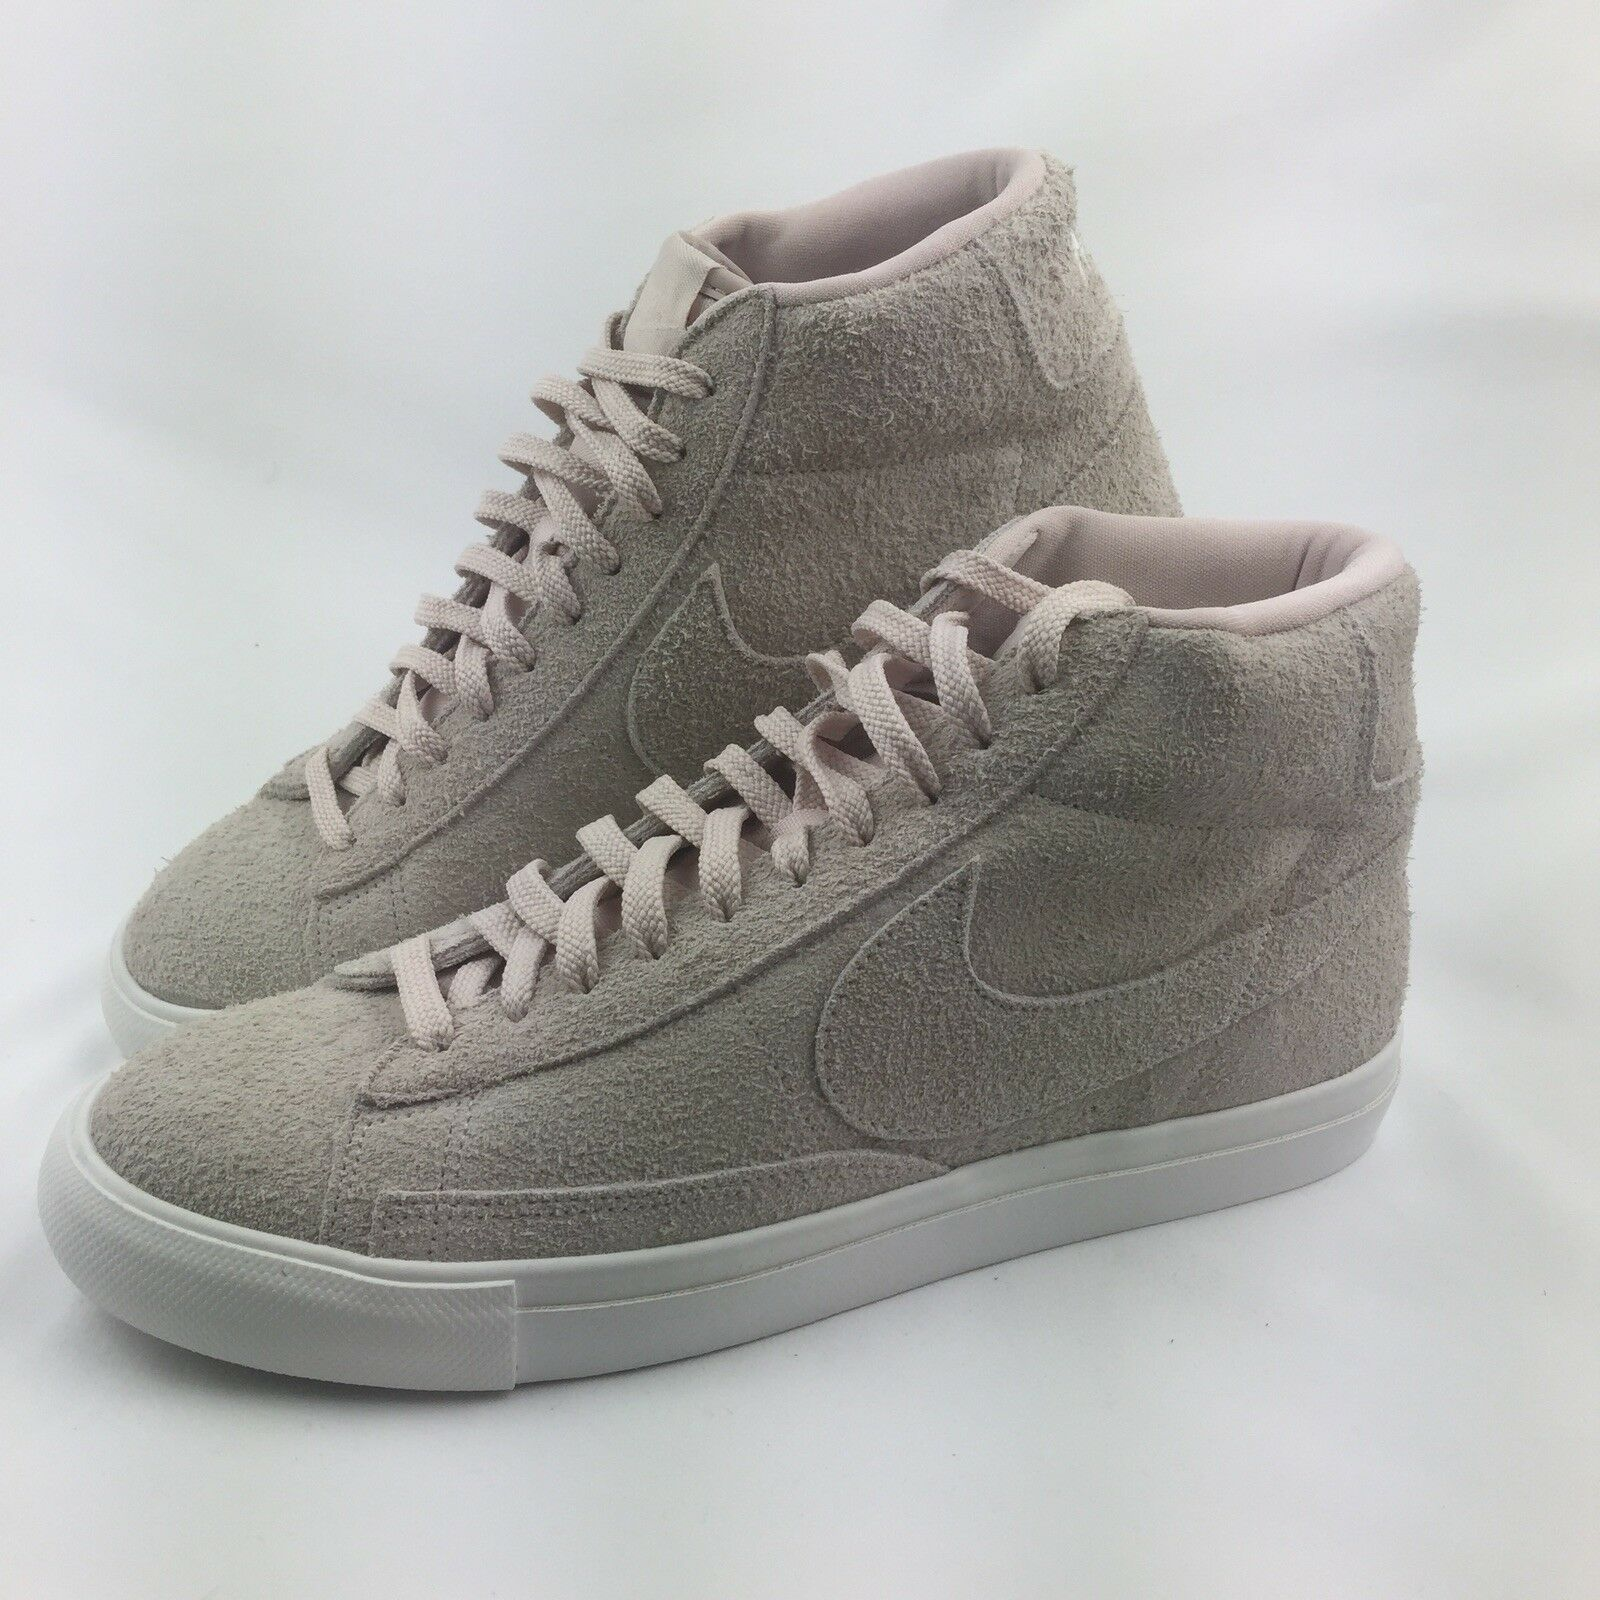 Nike Blazer Mid Cream Off White Mens shoes Sizes 12 (371761 607)